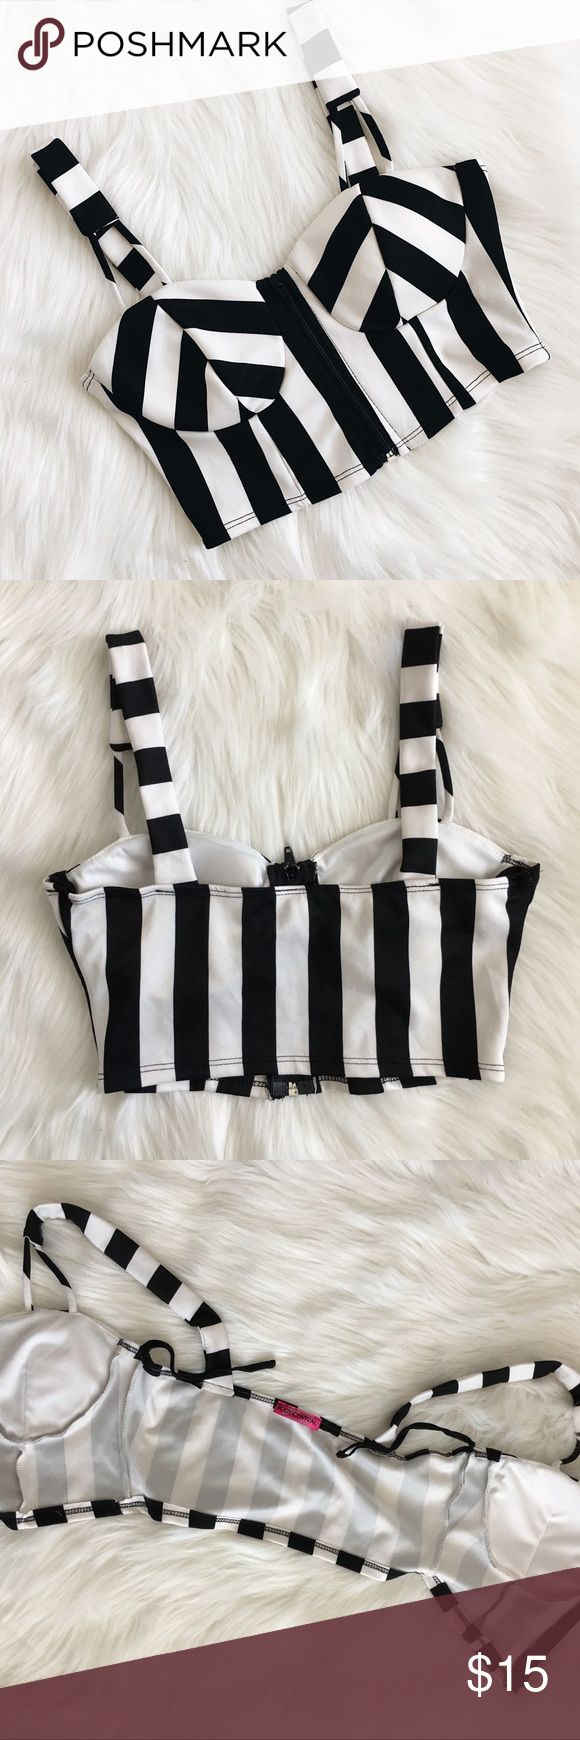 Zip up Corset Cropped Top Stripes Black and White Zips up in the front Stripes Black and white Padded chest Size Medium From Body Central  Good condition Body Central Tops Crop Tops